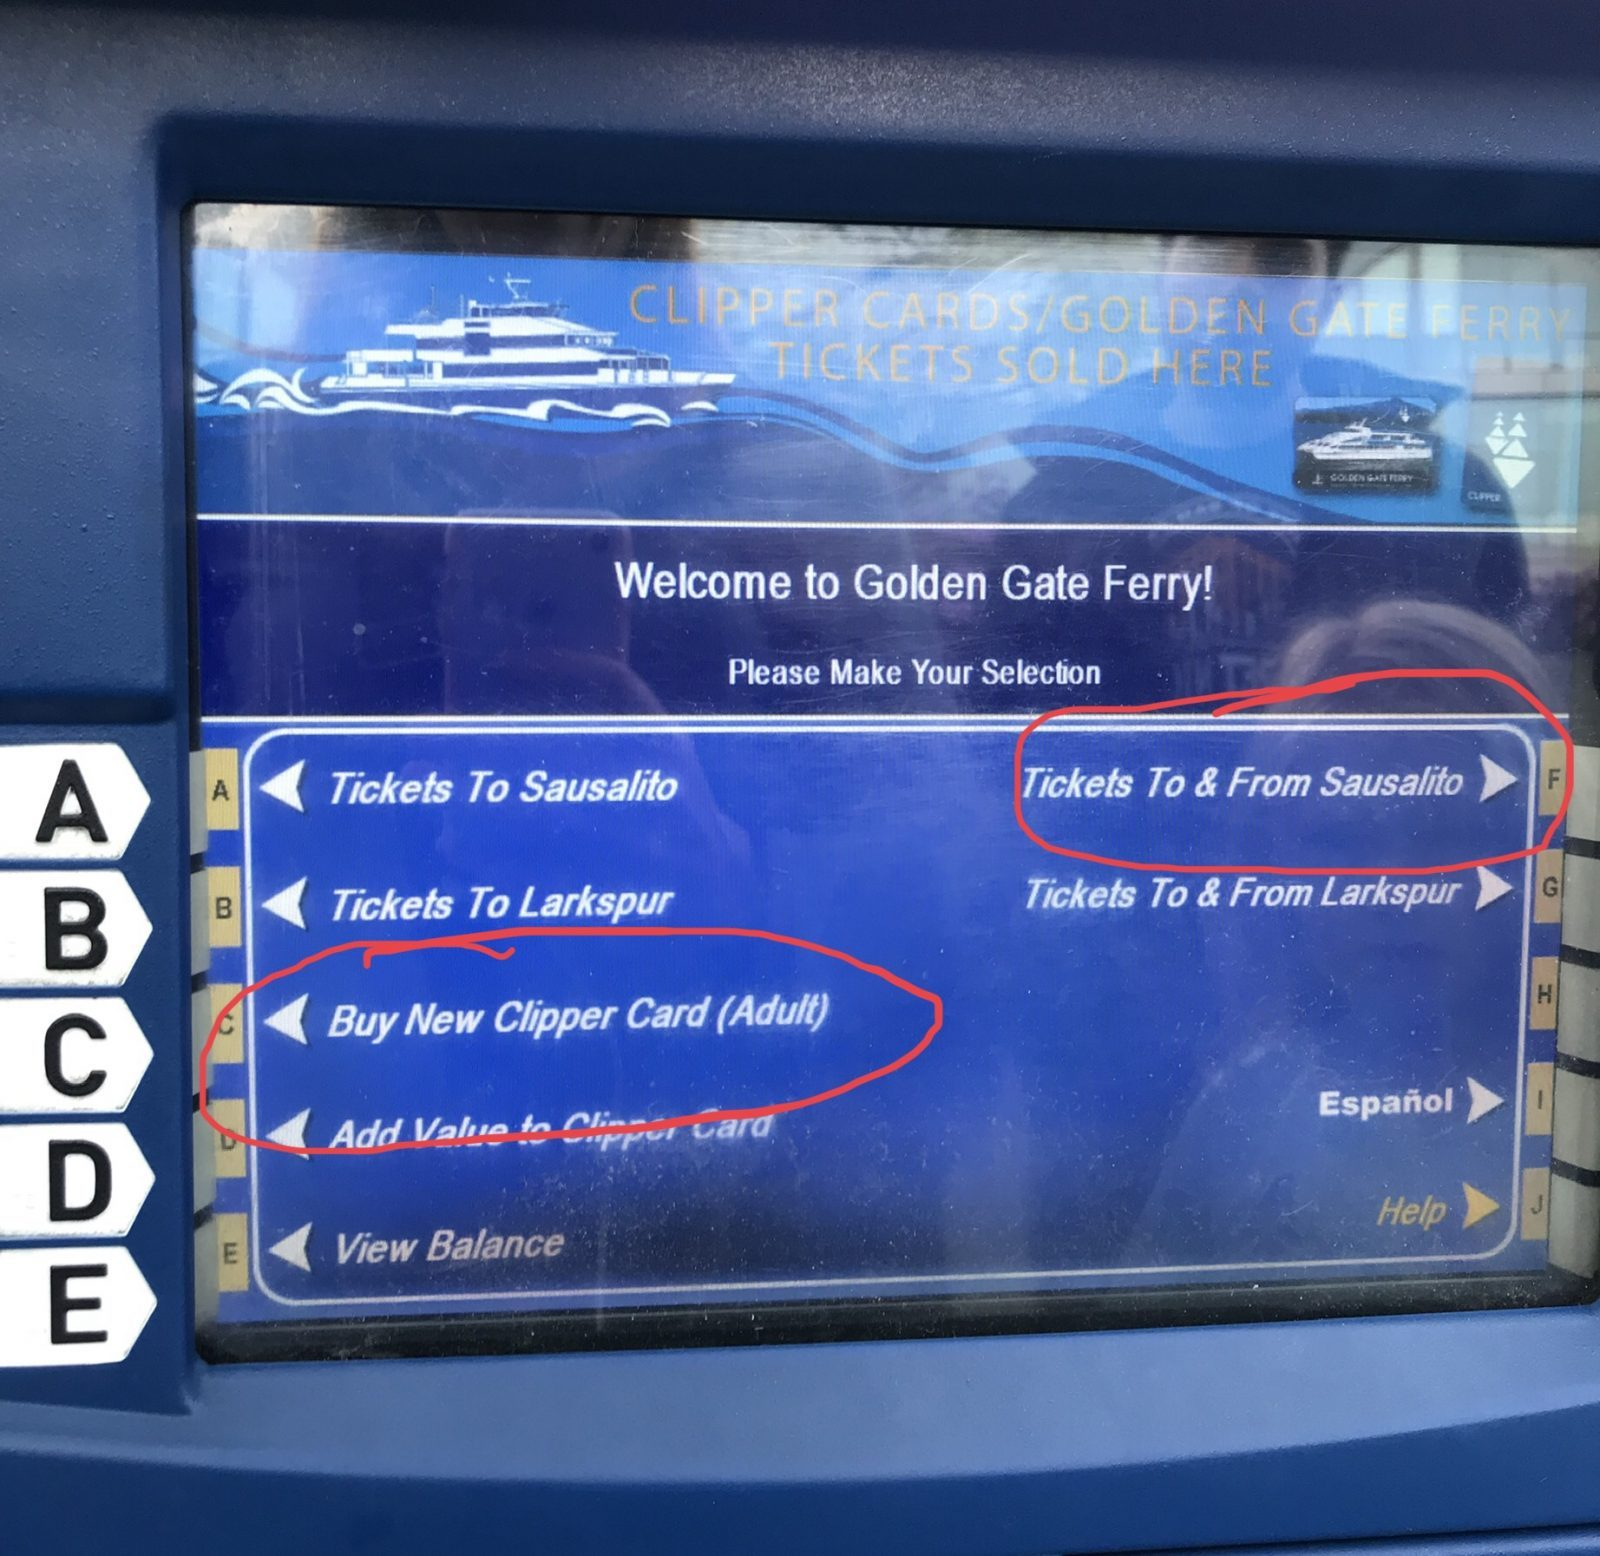 ticket options listed on the machine